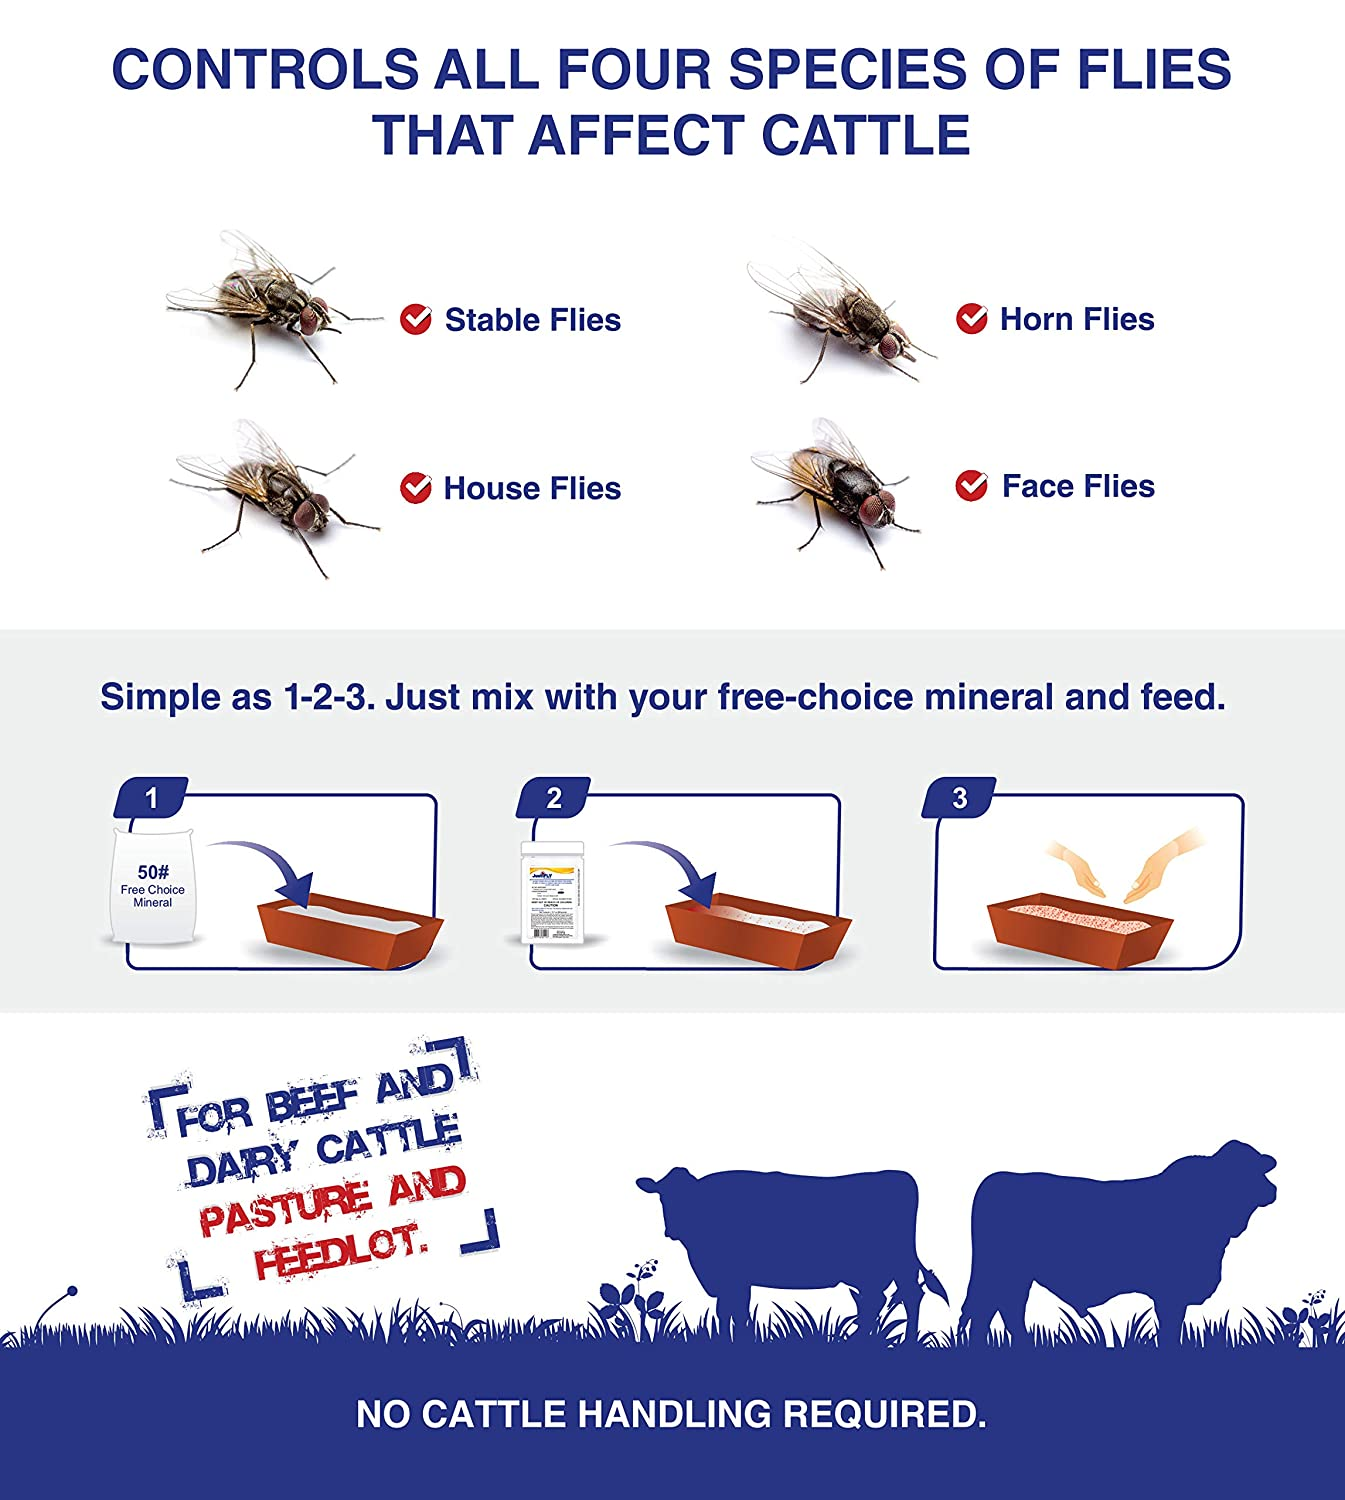 JustiFLY Champion USA Feedthrough Cattle Fly Control, 6 Pack | Non-Toxic  Larvicide  Controls All Four Fly Species That Affect Cattle  Over 50  Million